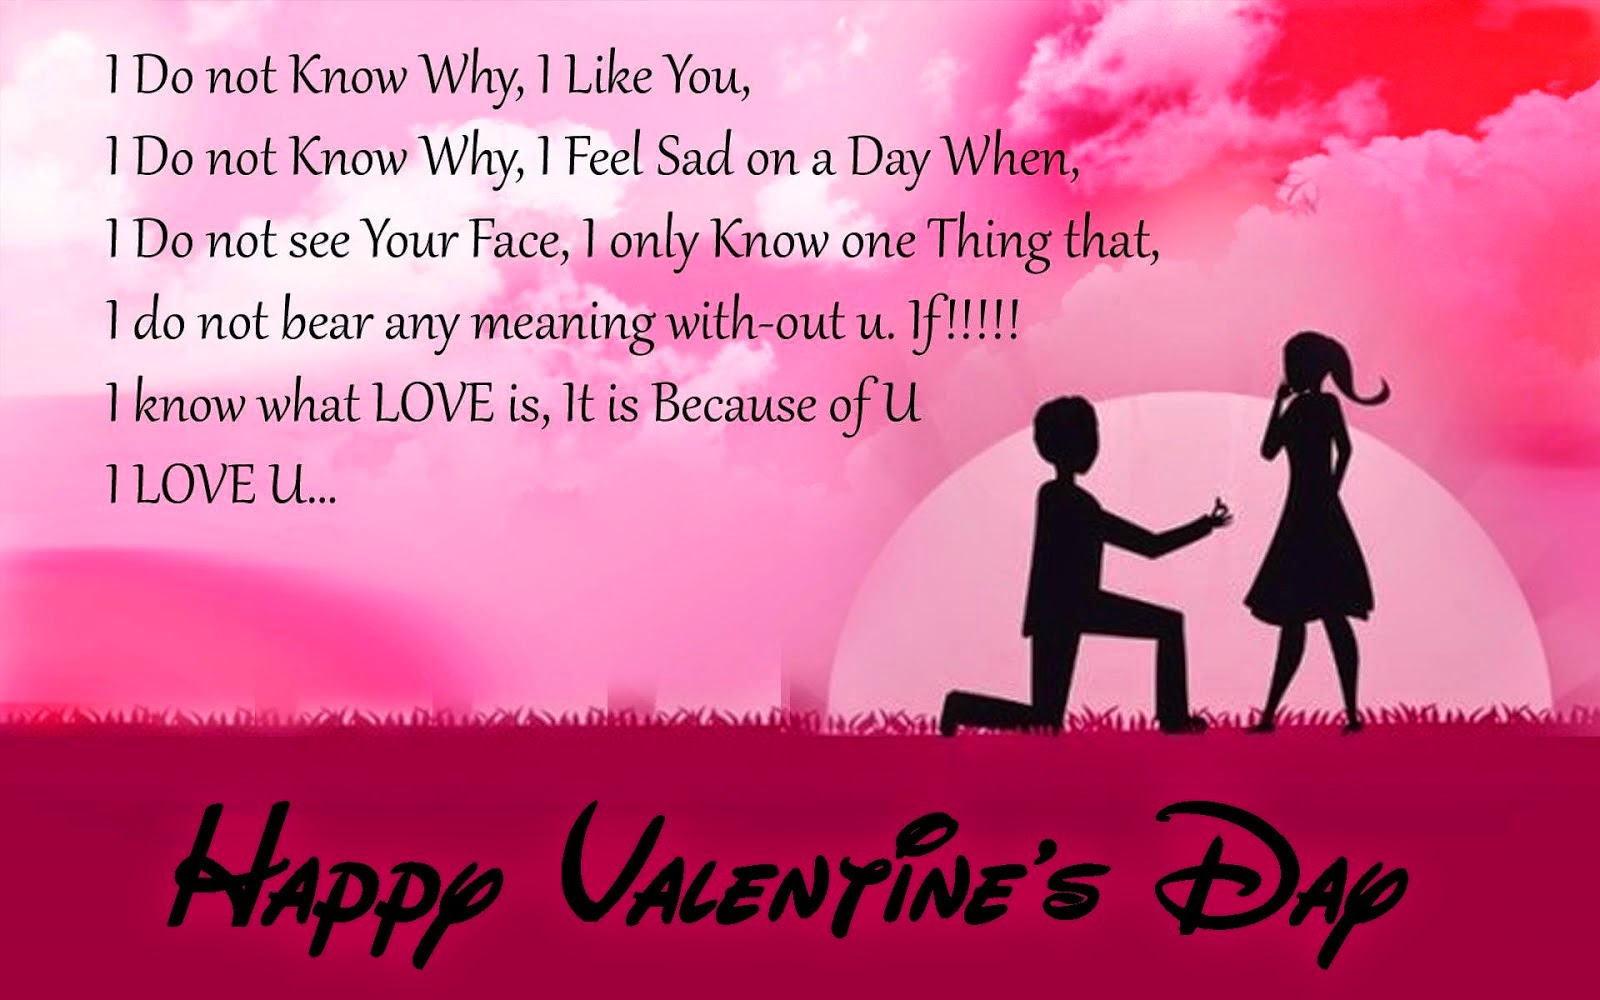 happy valentines day quotes for your husband - Husband Valentine Quotes